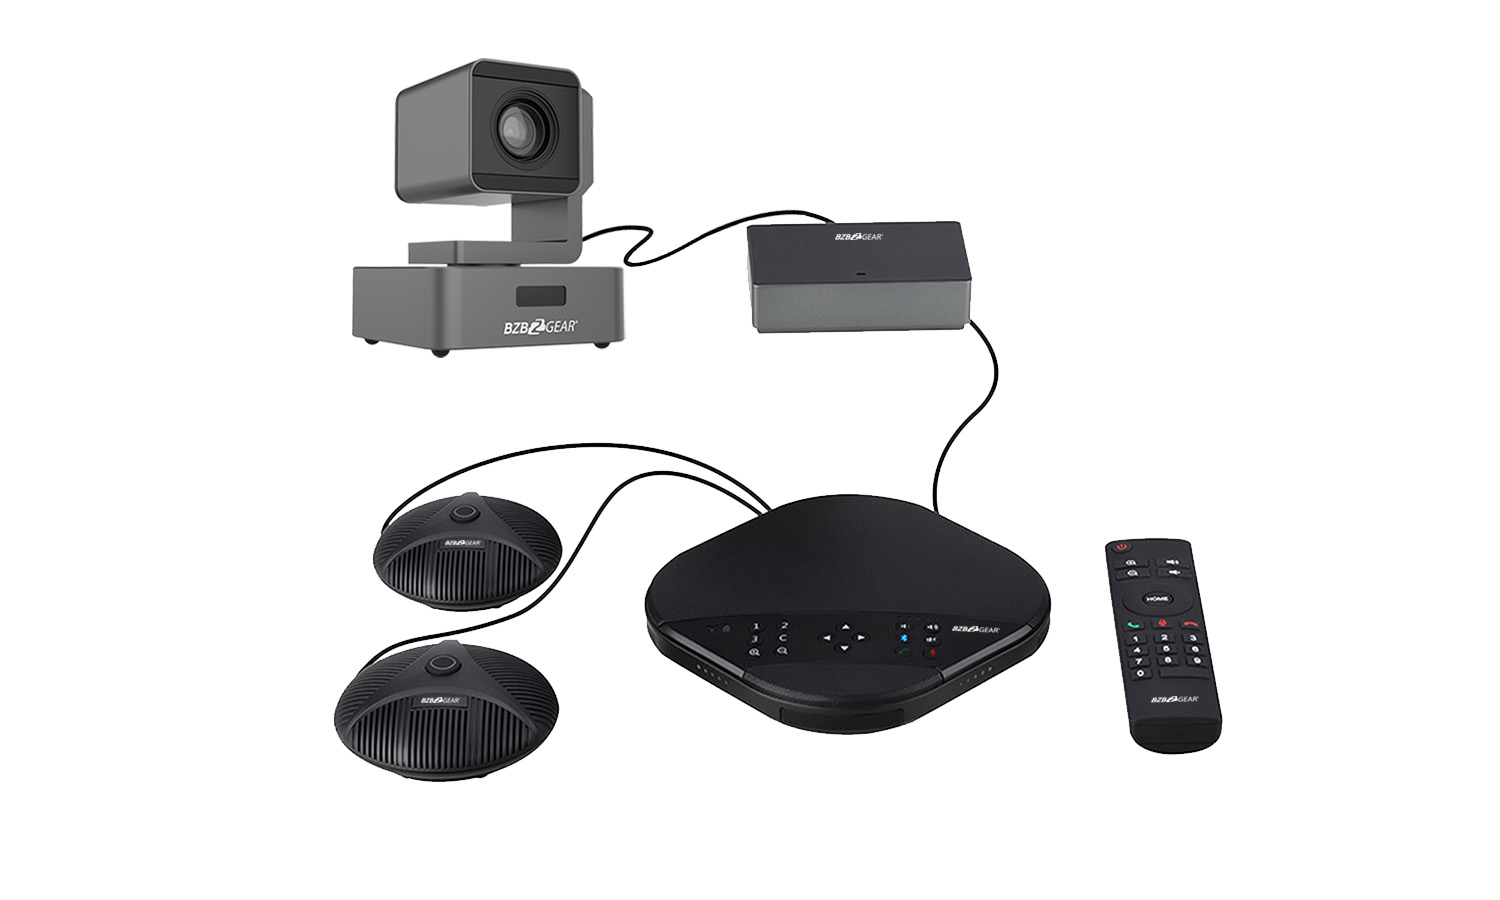 BG-AIOE-KIT Conferencing Kit with PTZ Camera Speakerphone and 2 Additional Mics by BZBGEAR